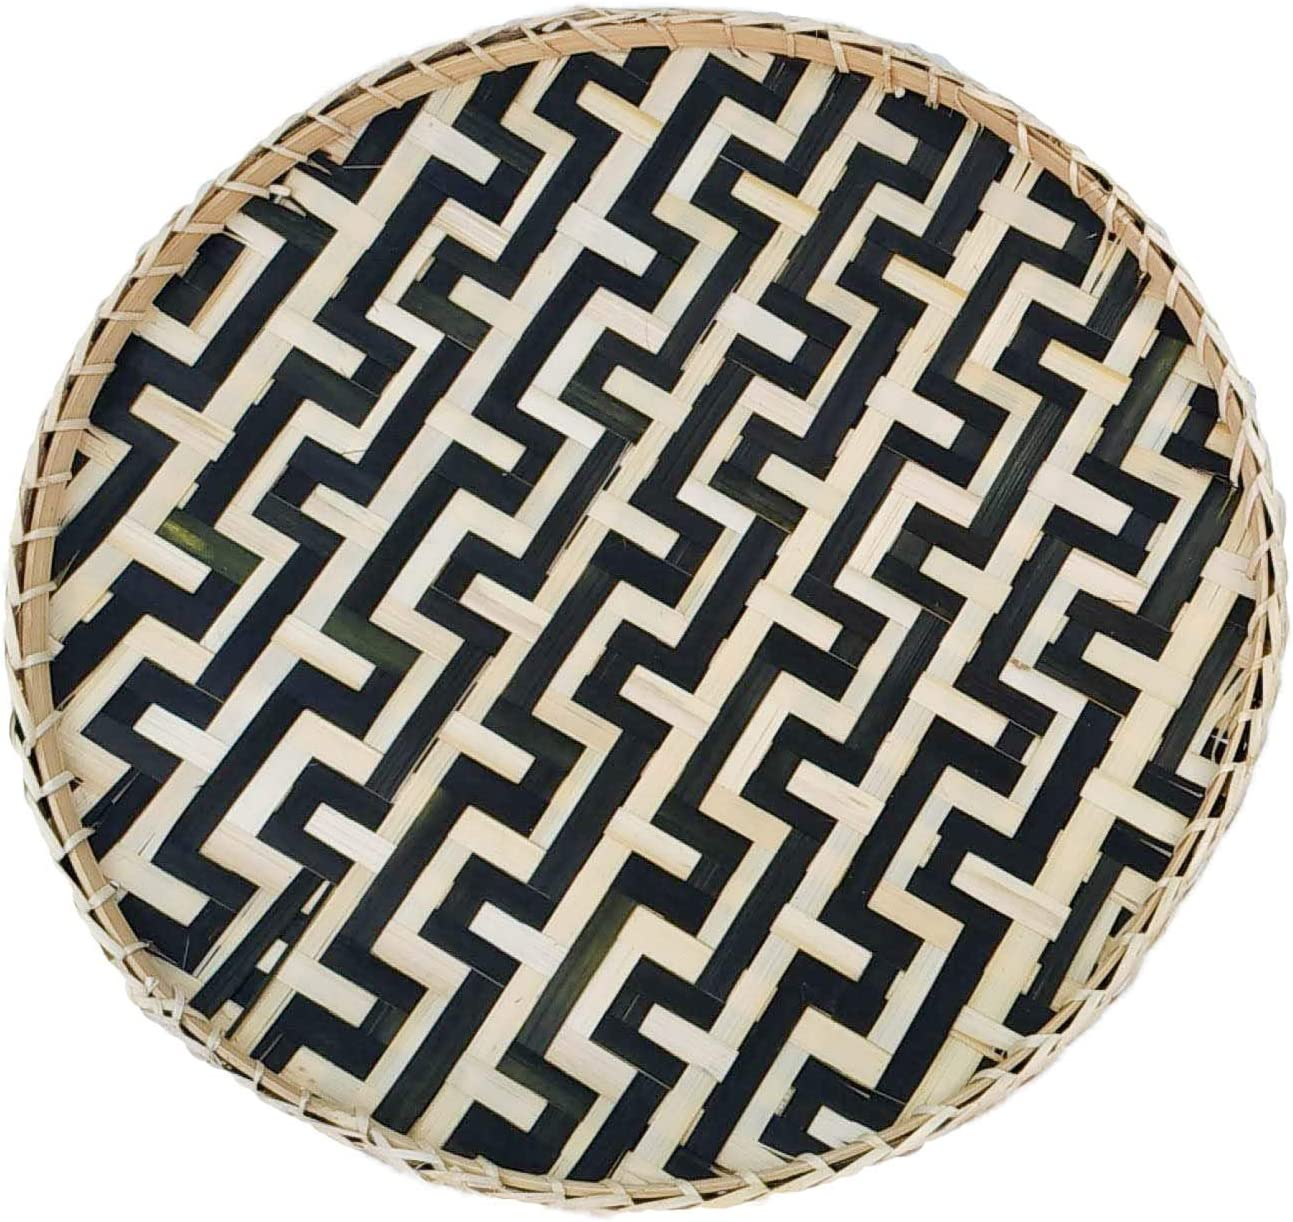 Bamboo Woven Round Basket Tray Rustic Wood Decorative Serving Tray for Breakfast, Drinks, Snack, Coffee Table   Chic Rustic Boho Decor Wall Hanging Home Decoration (Round - Snake Black)